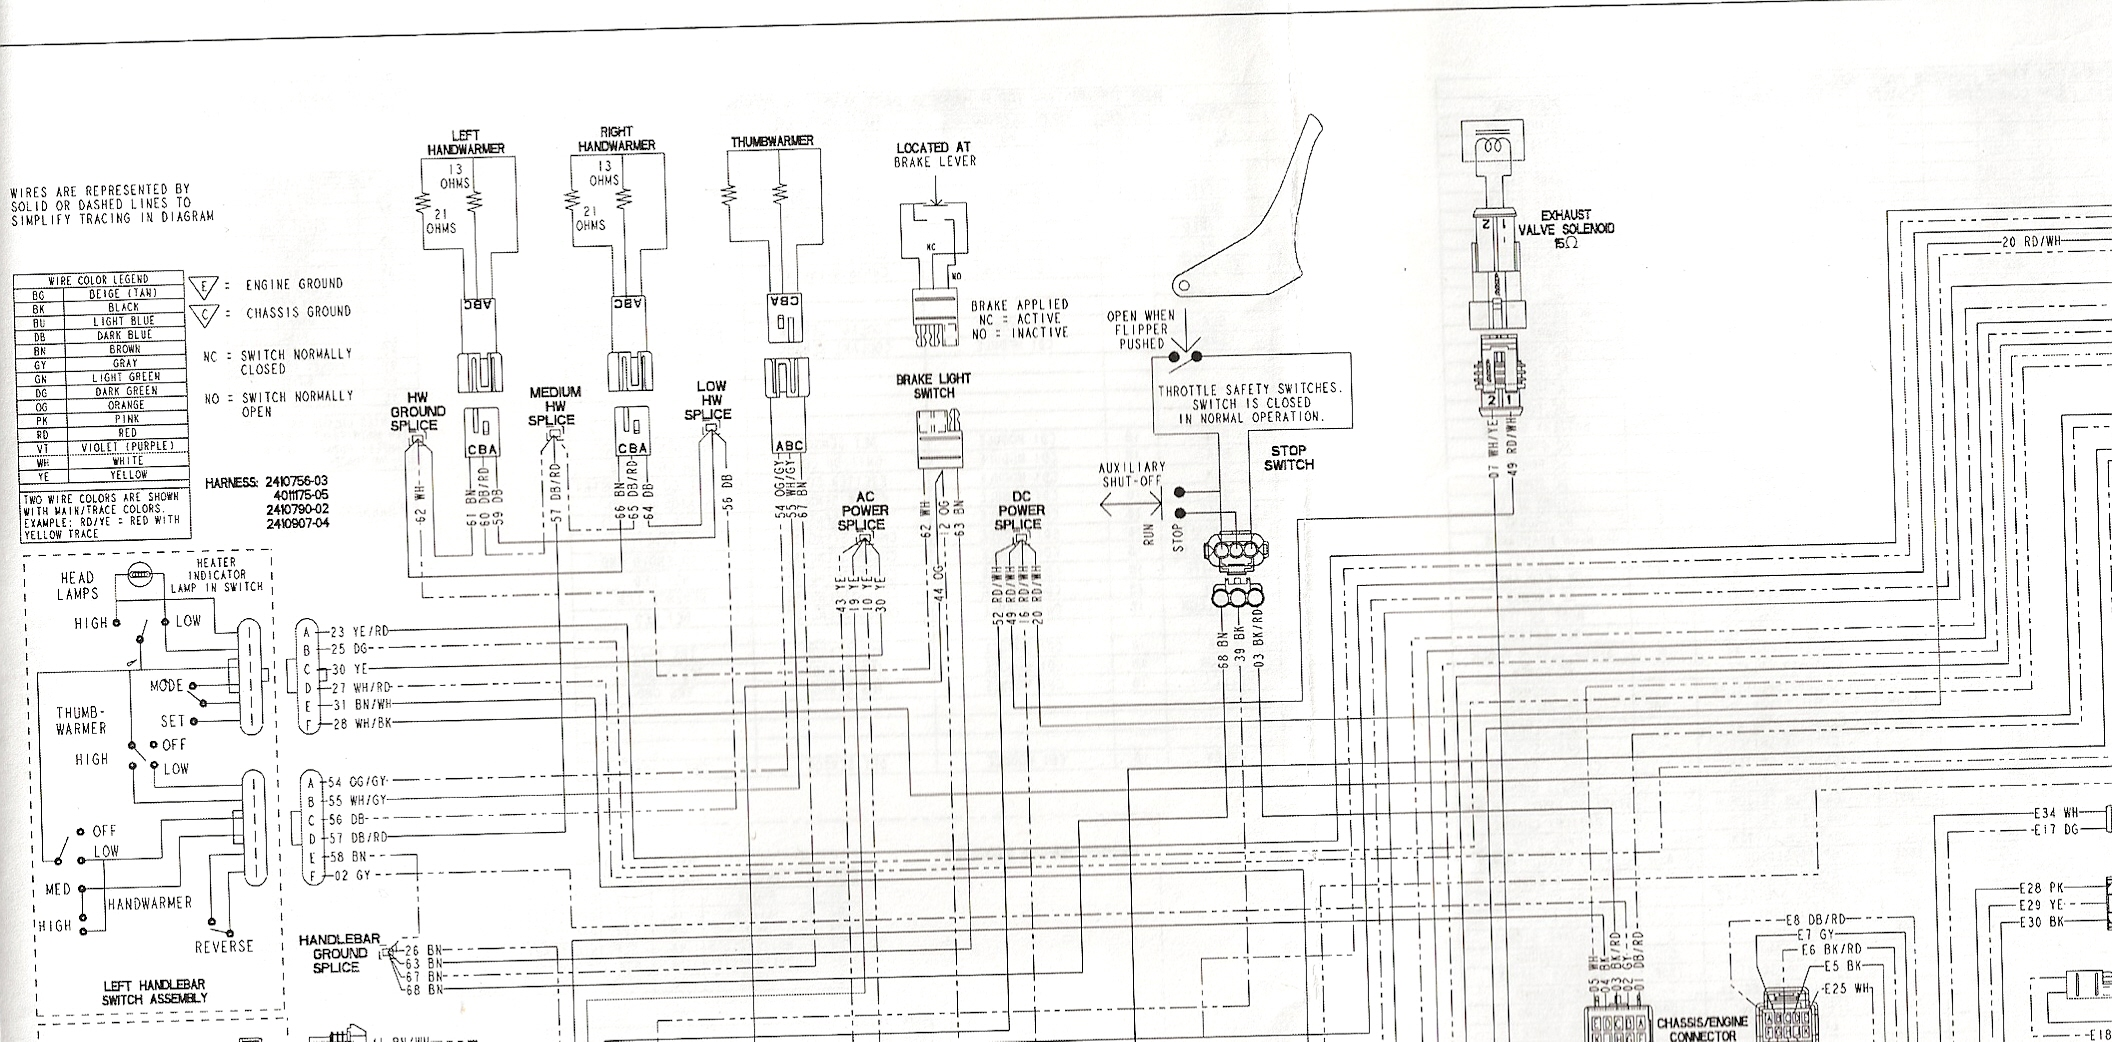 small resolution of 2004 polaris 600 wiring diagram schematic simple wiring diagrams 2004 polaris sportsman 500 wiring diagram polaris 600 rush wiring diagram